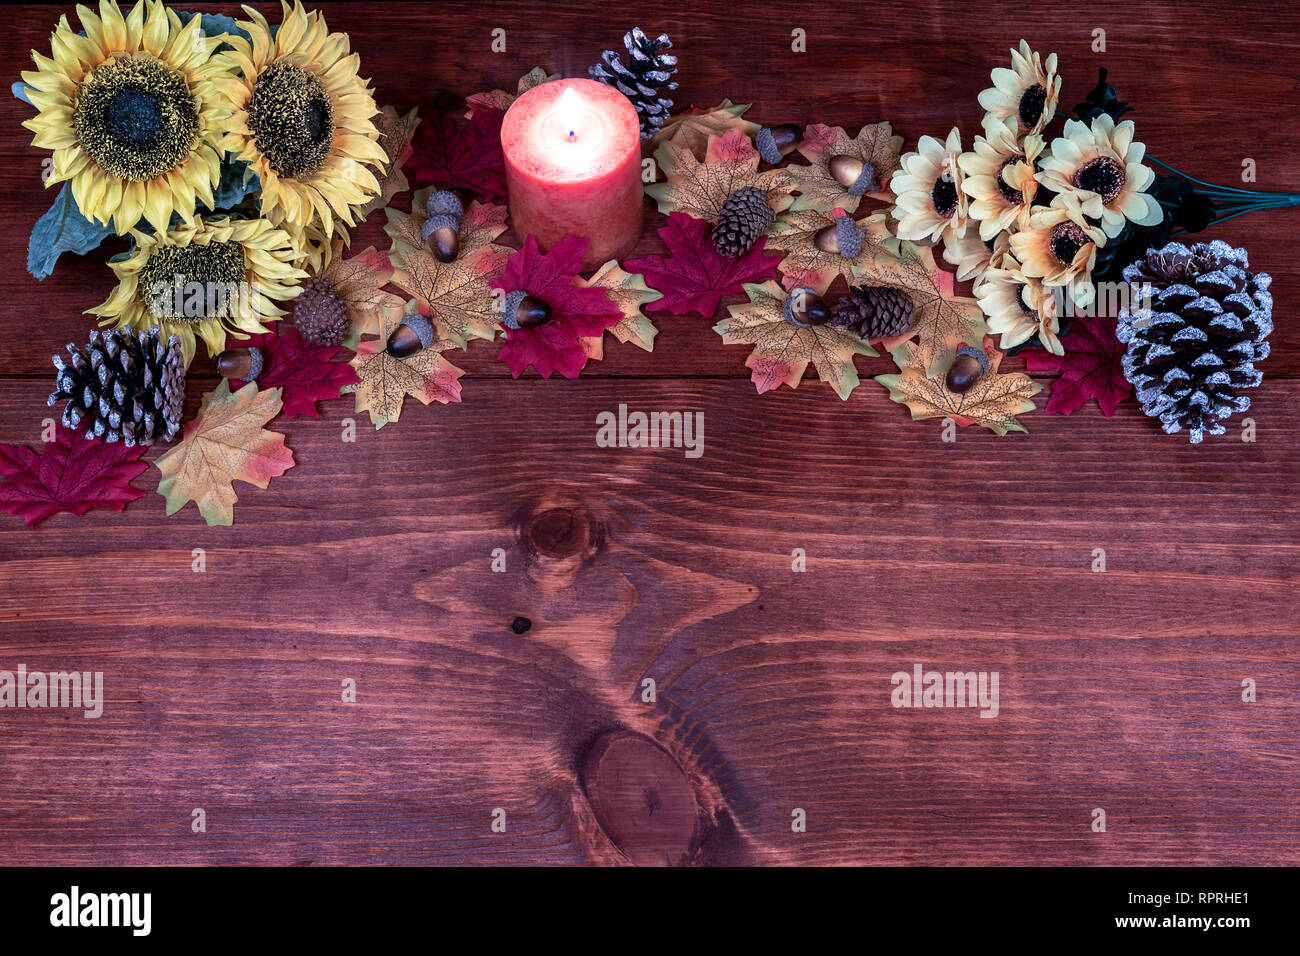 Thanksgiving decor with candle, frosted pine cones, sunflowers, acorns and maple leaves Stock Photo